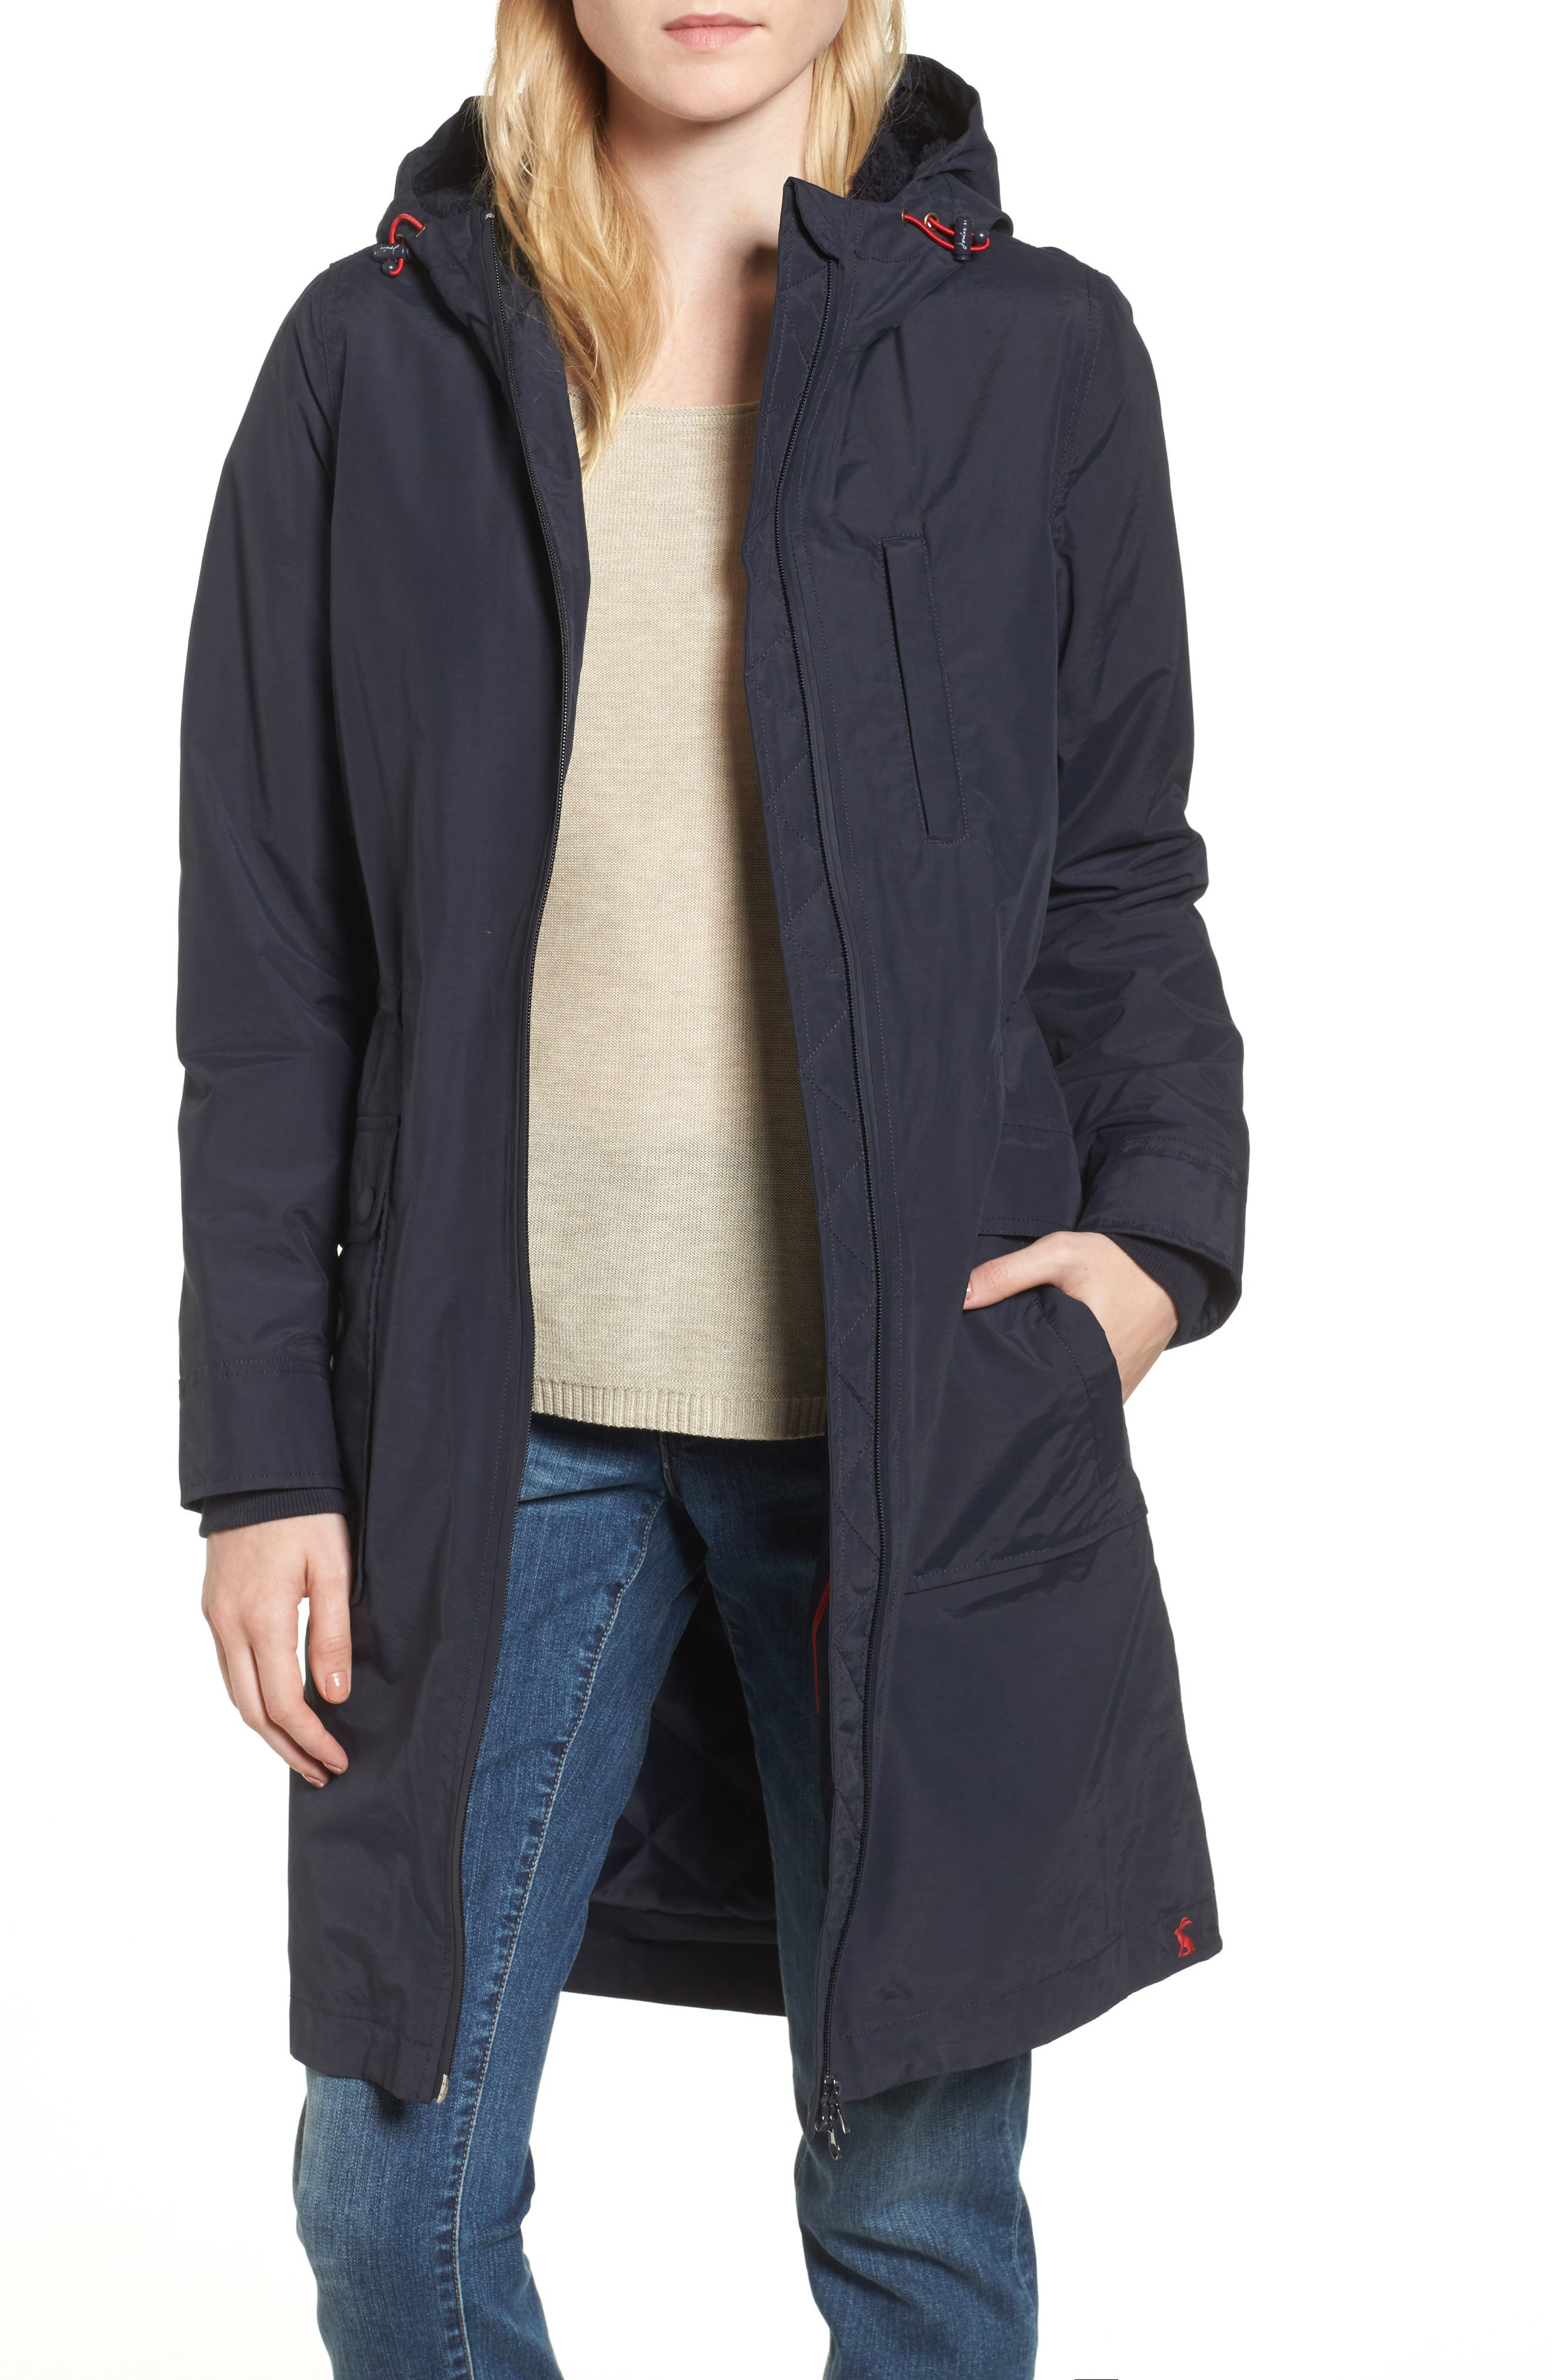 Alternate Image 1 Selected - Joules Hooded Fleece Lined Raincoat